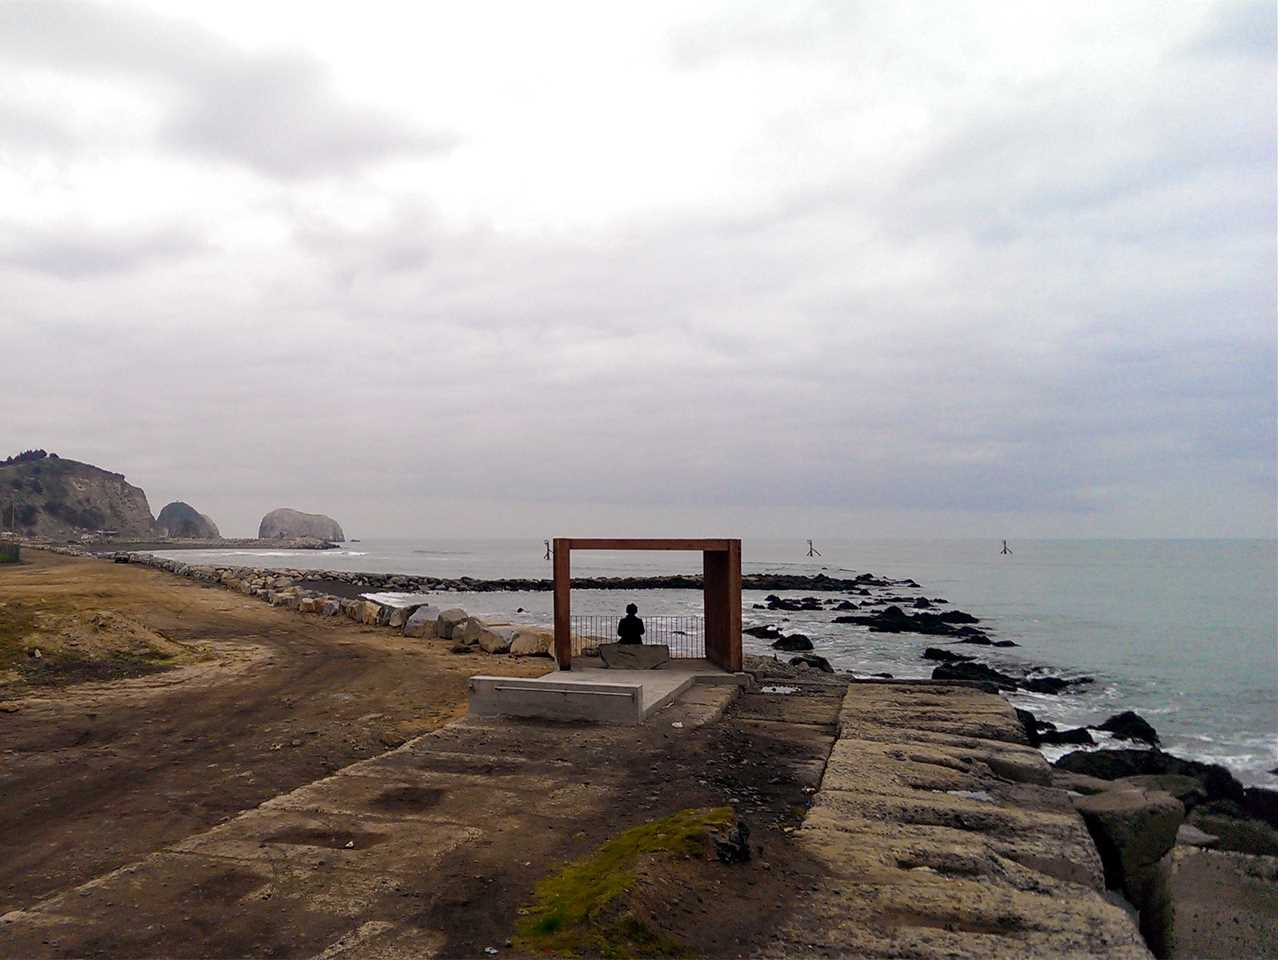 Project update July 2014 - Sustainable post-tsunami reconstruction master plan, Constitución, Chile